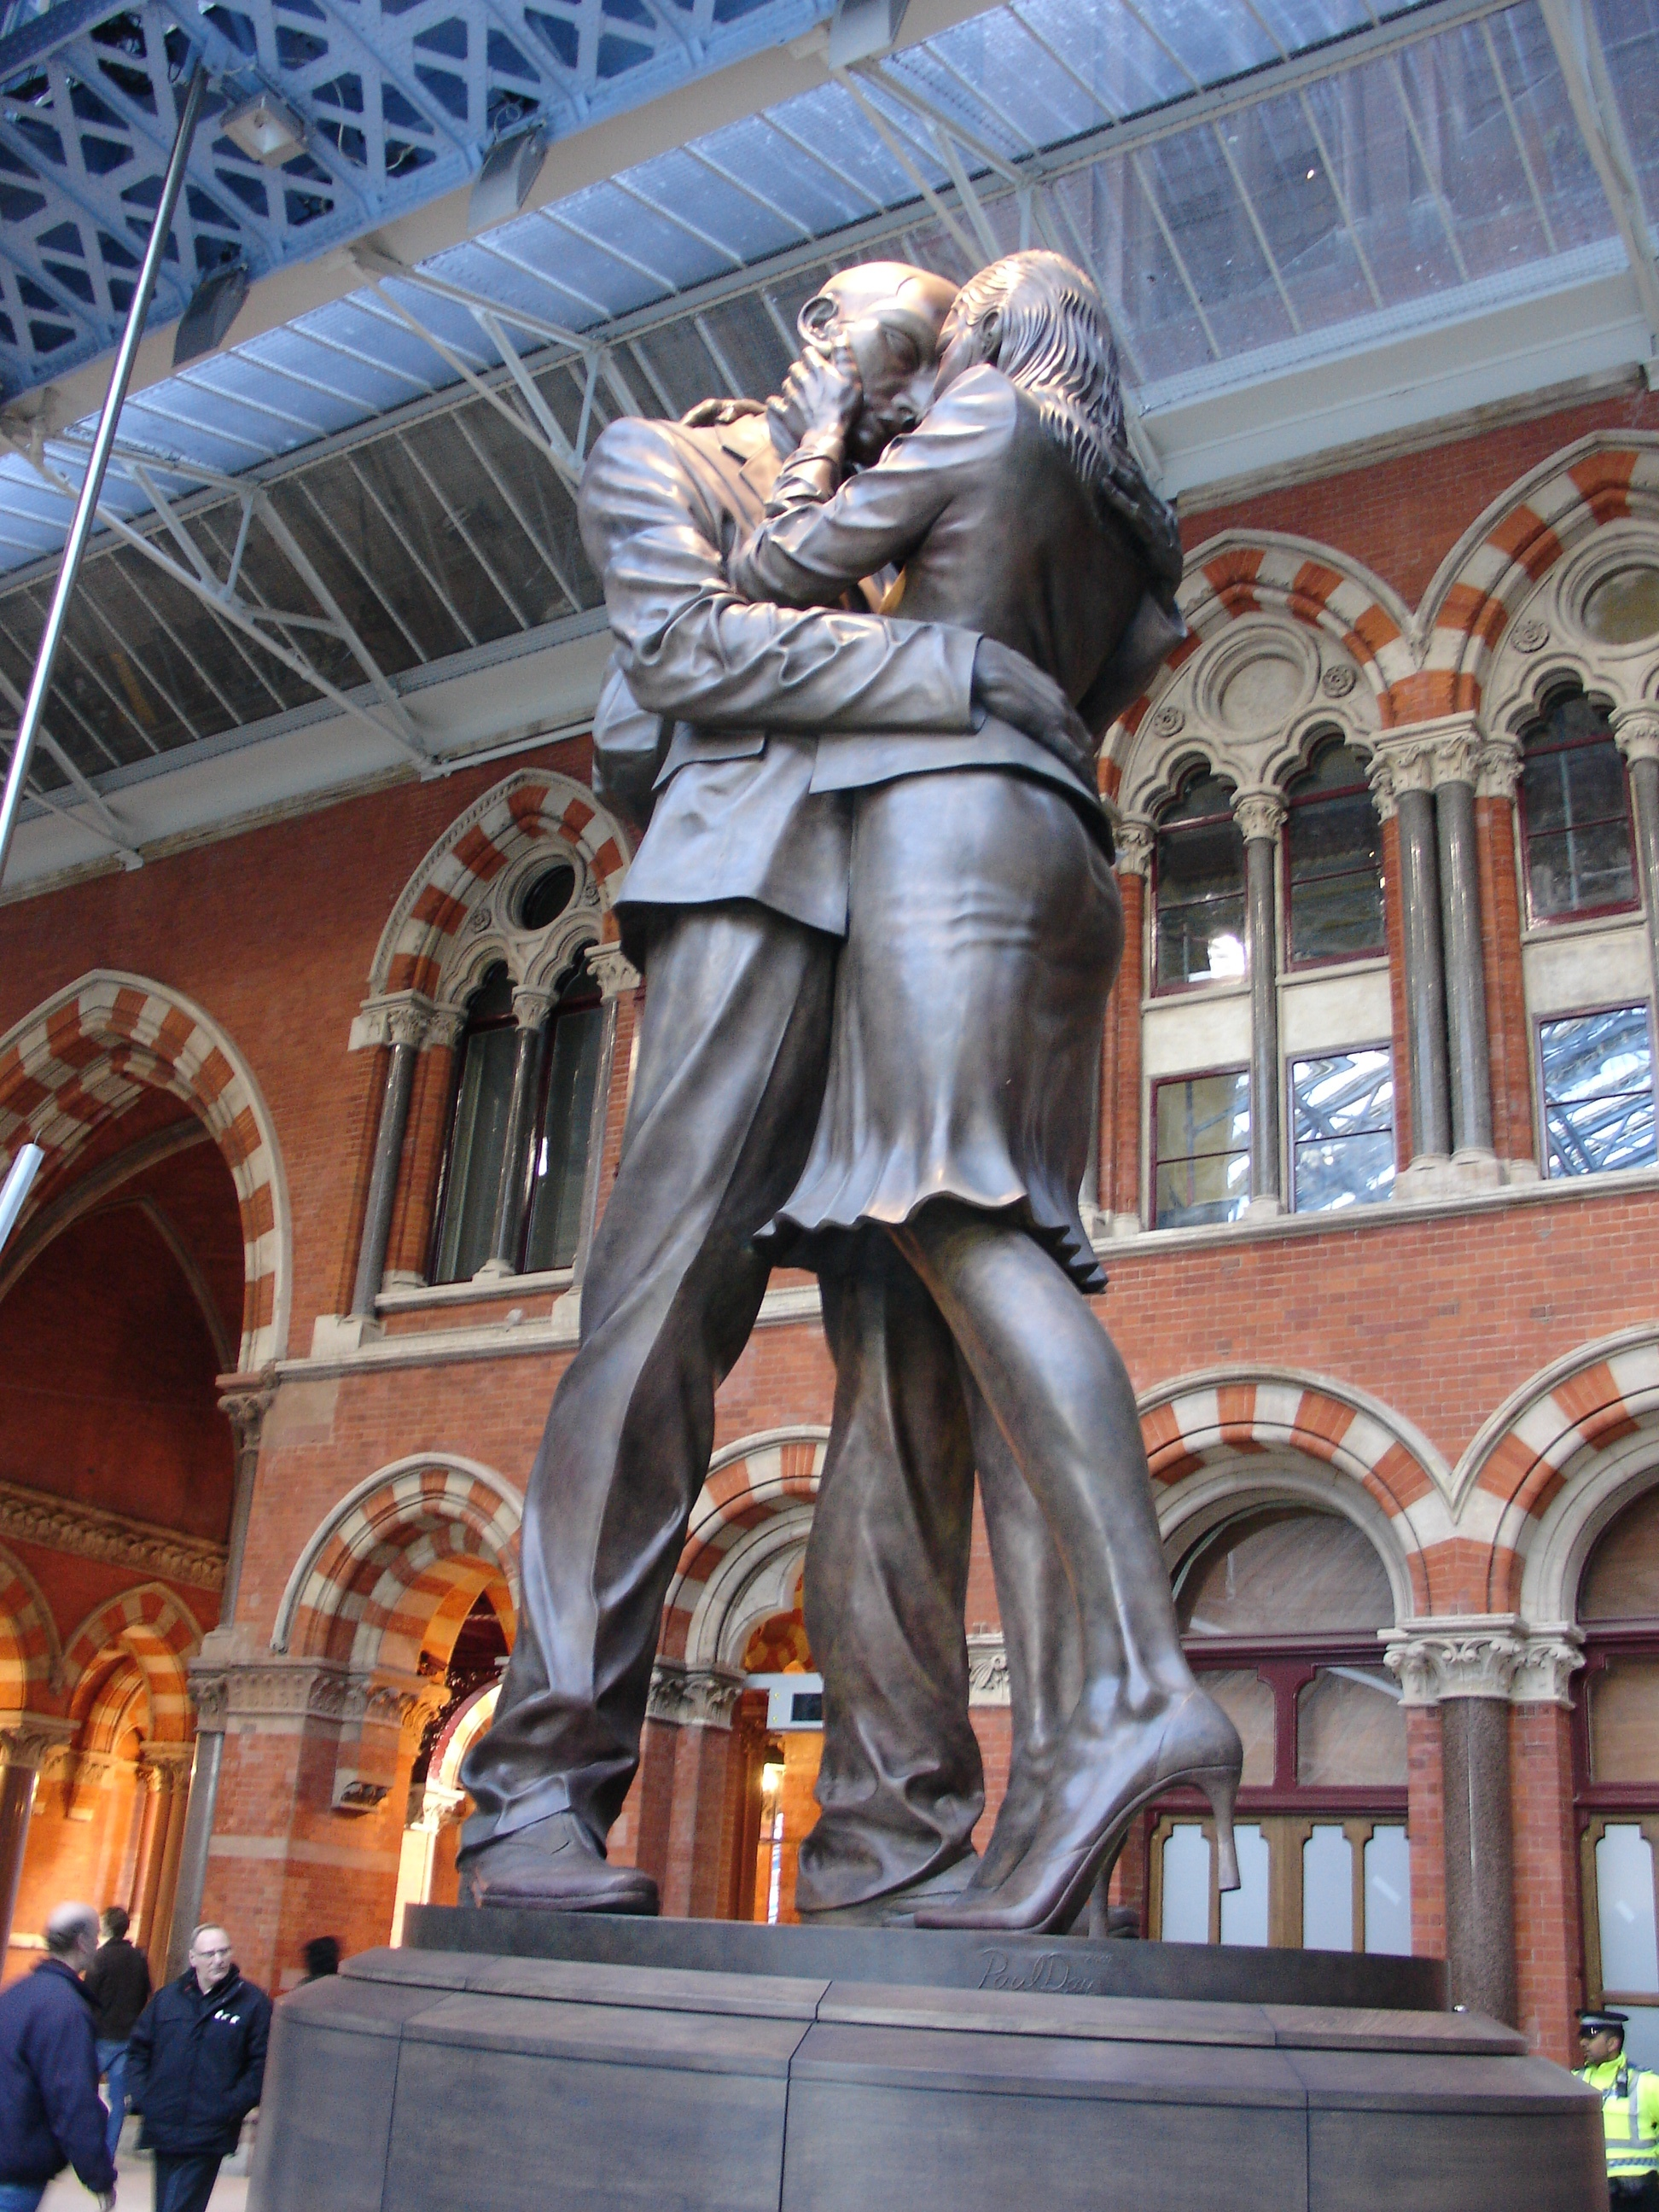 This sculpture stands under the central clock at St Pancras station in London.  The bronze sculpture is 9m high and was designed by Paul Day.